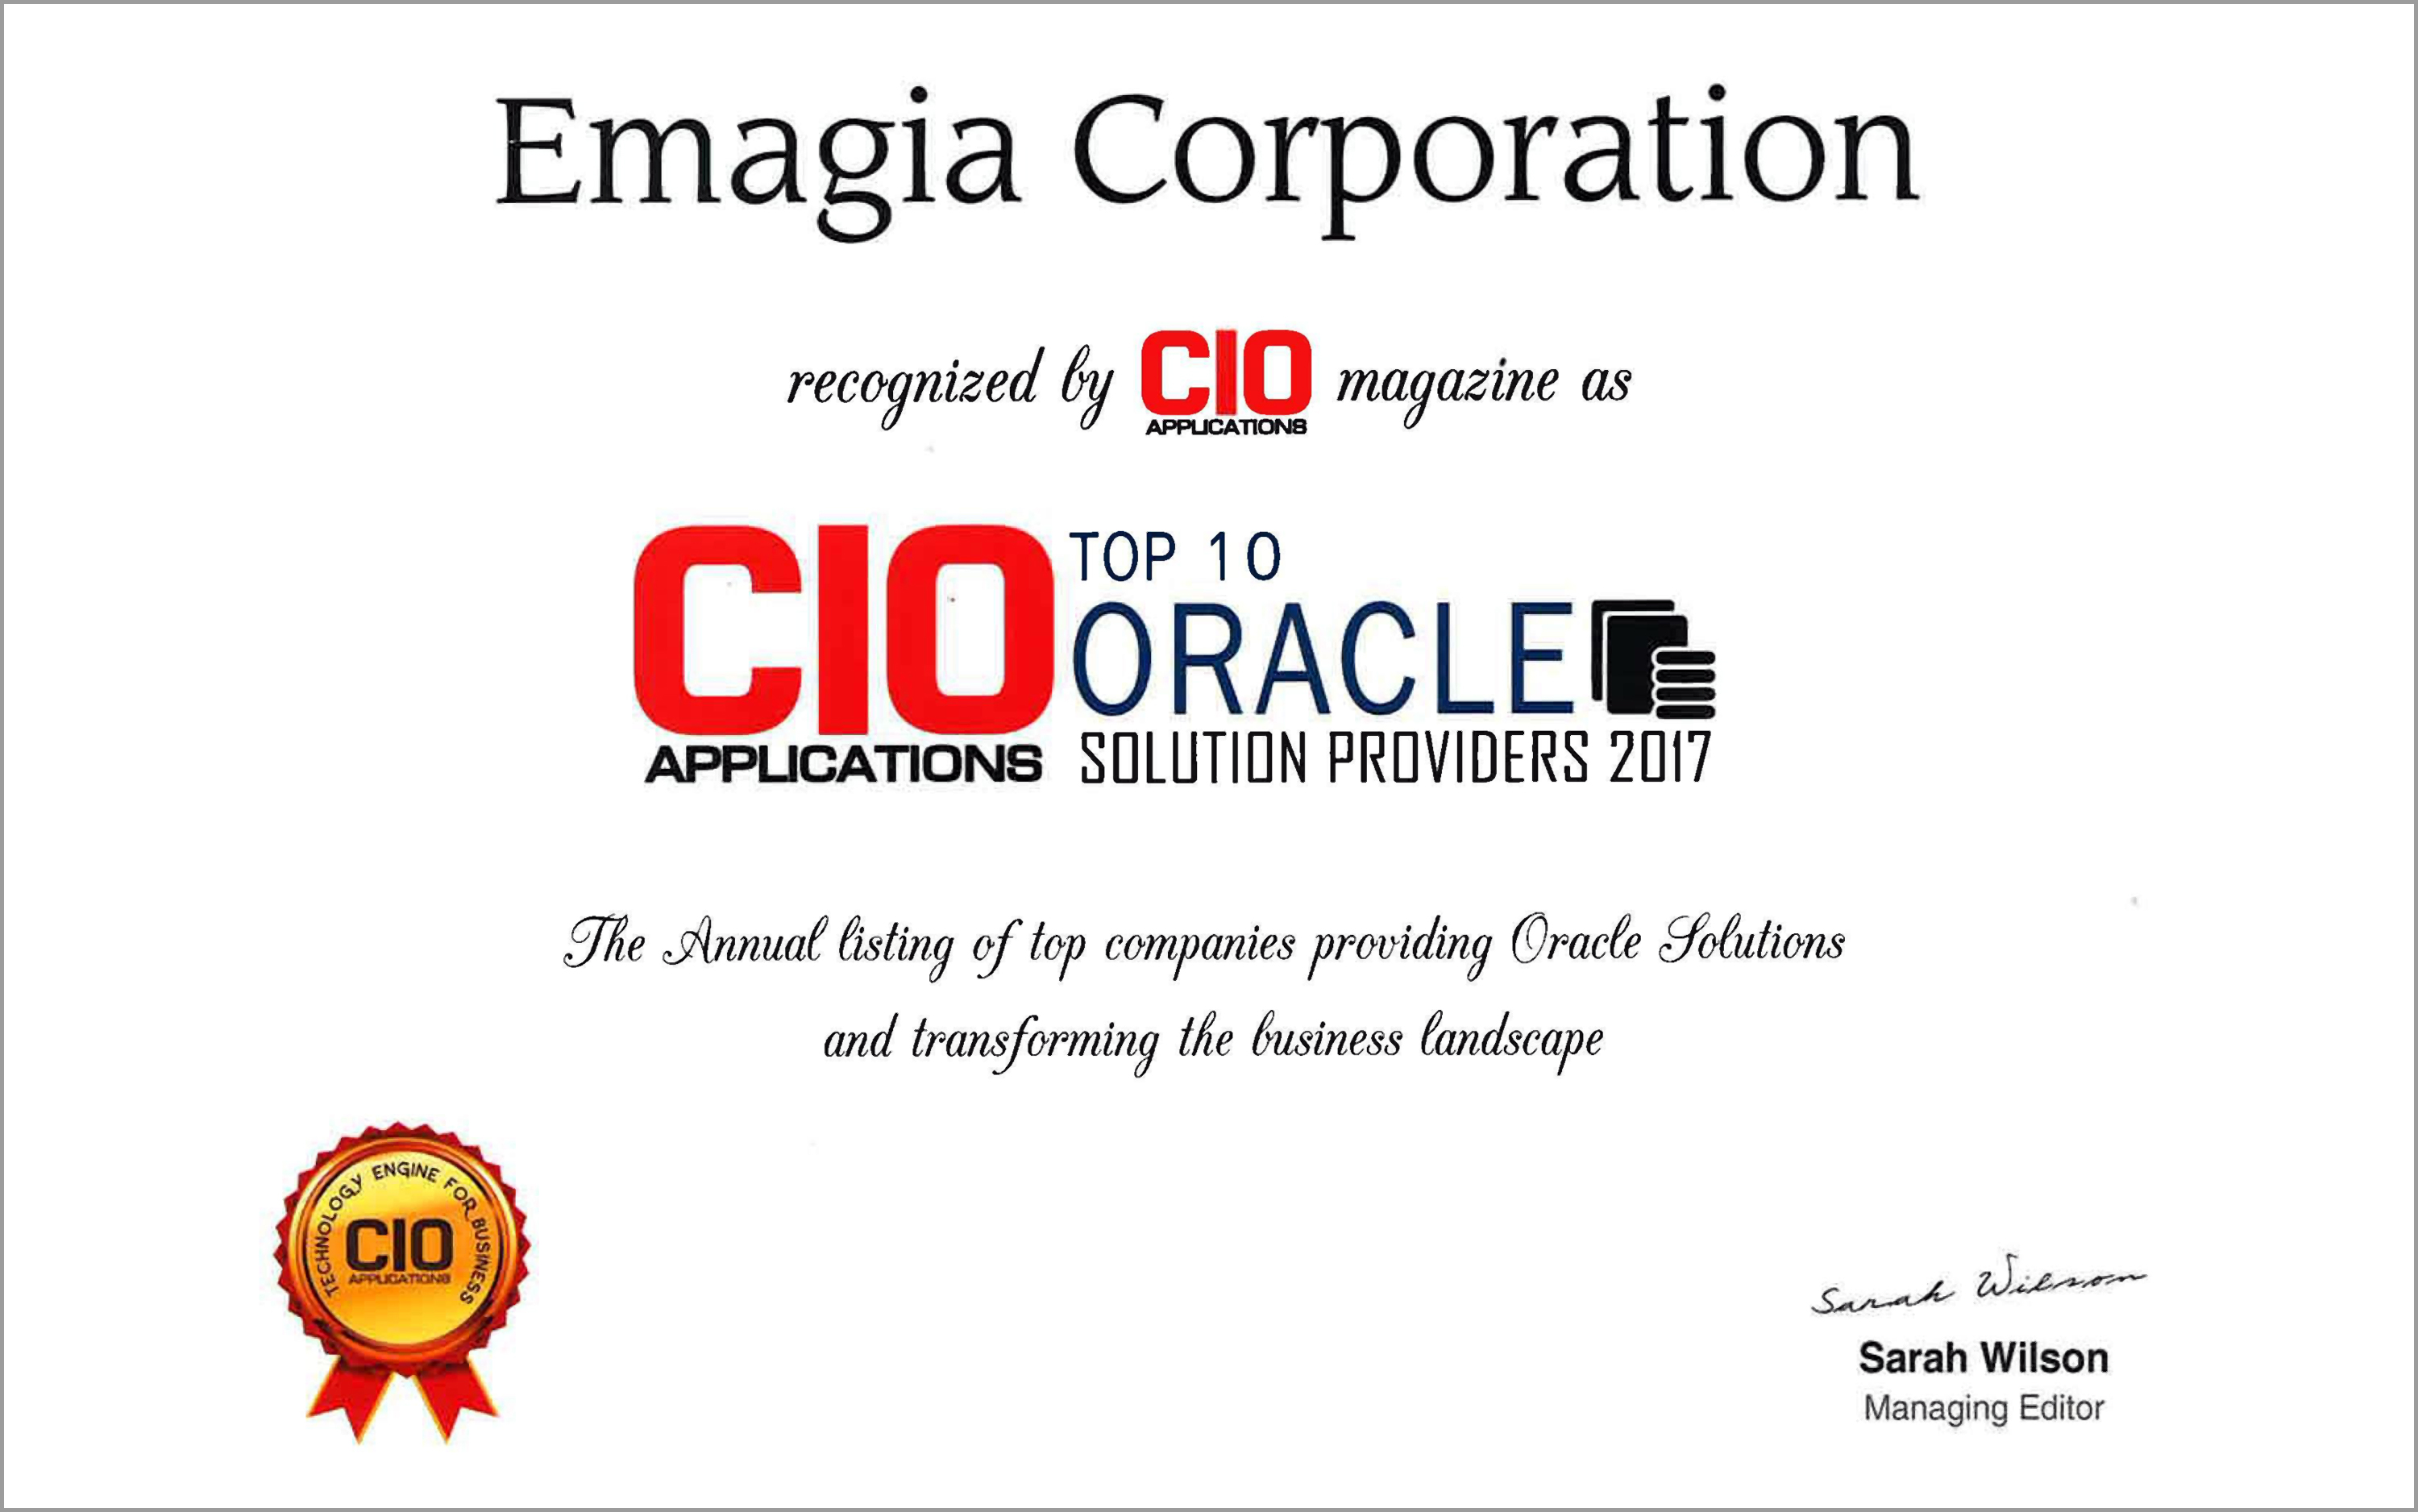 Emagia Named in CIO Applications Top 10 Oracle Solution Providers of 2017